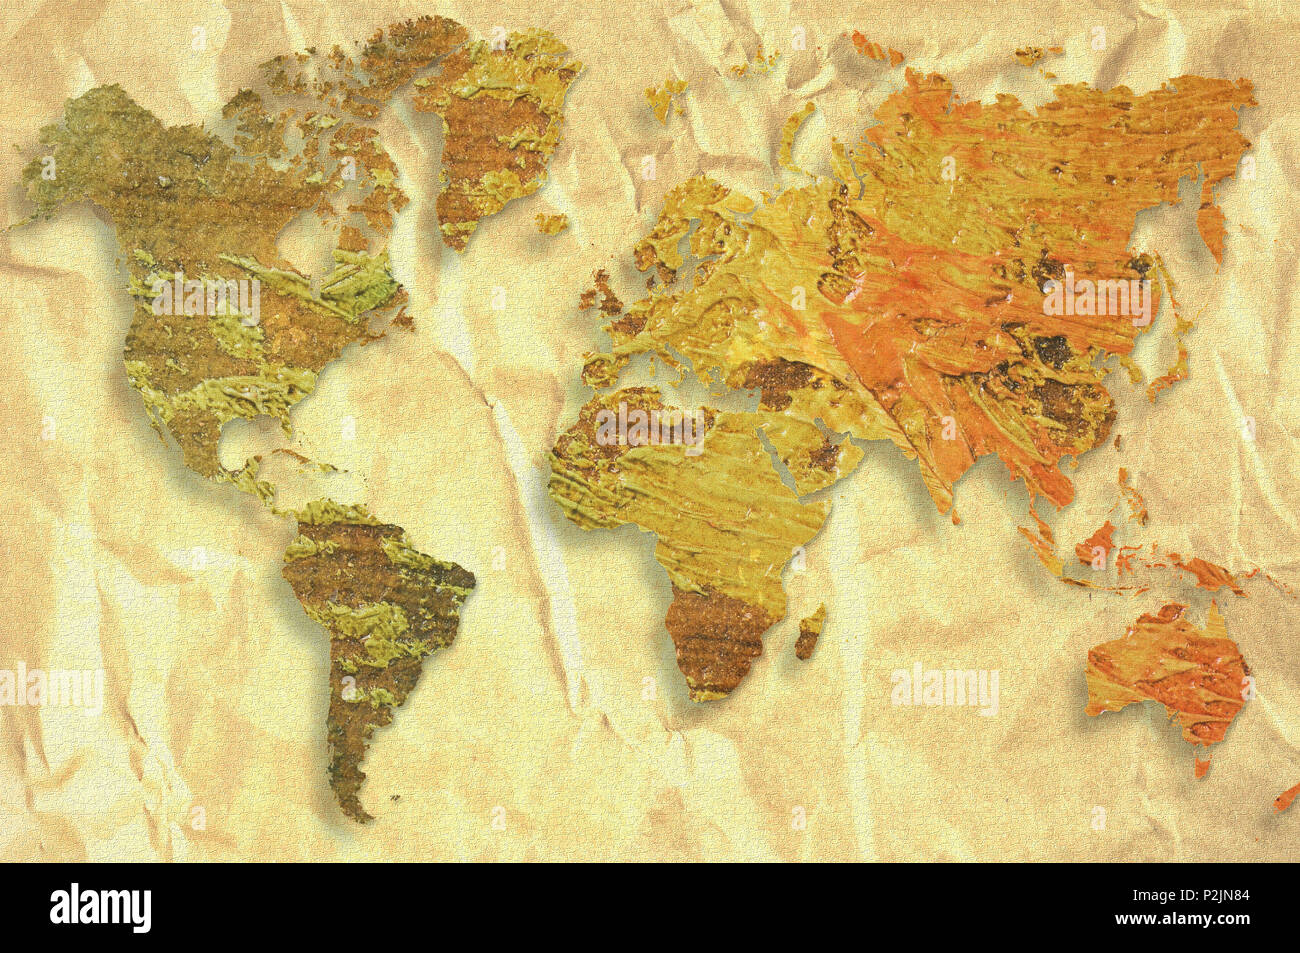 World map made with artistic oil colors on fabric background world map made with artistic oil colors on fabric background elements of this image furnished by nasa gumiabroncs Image collections